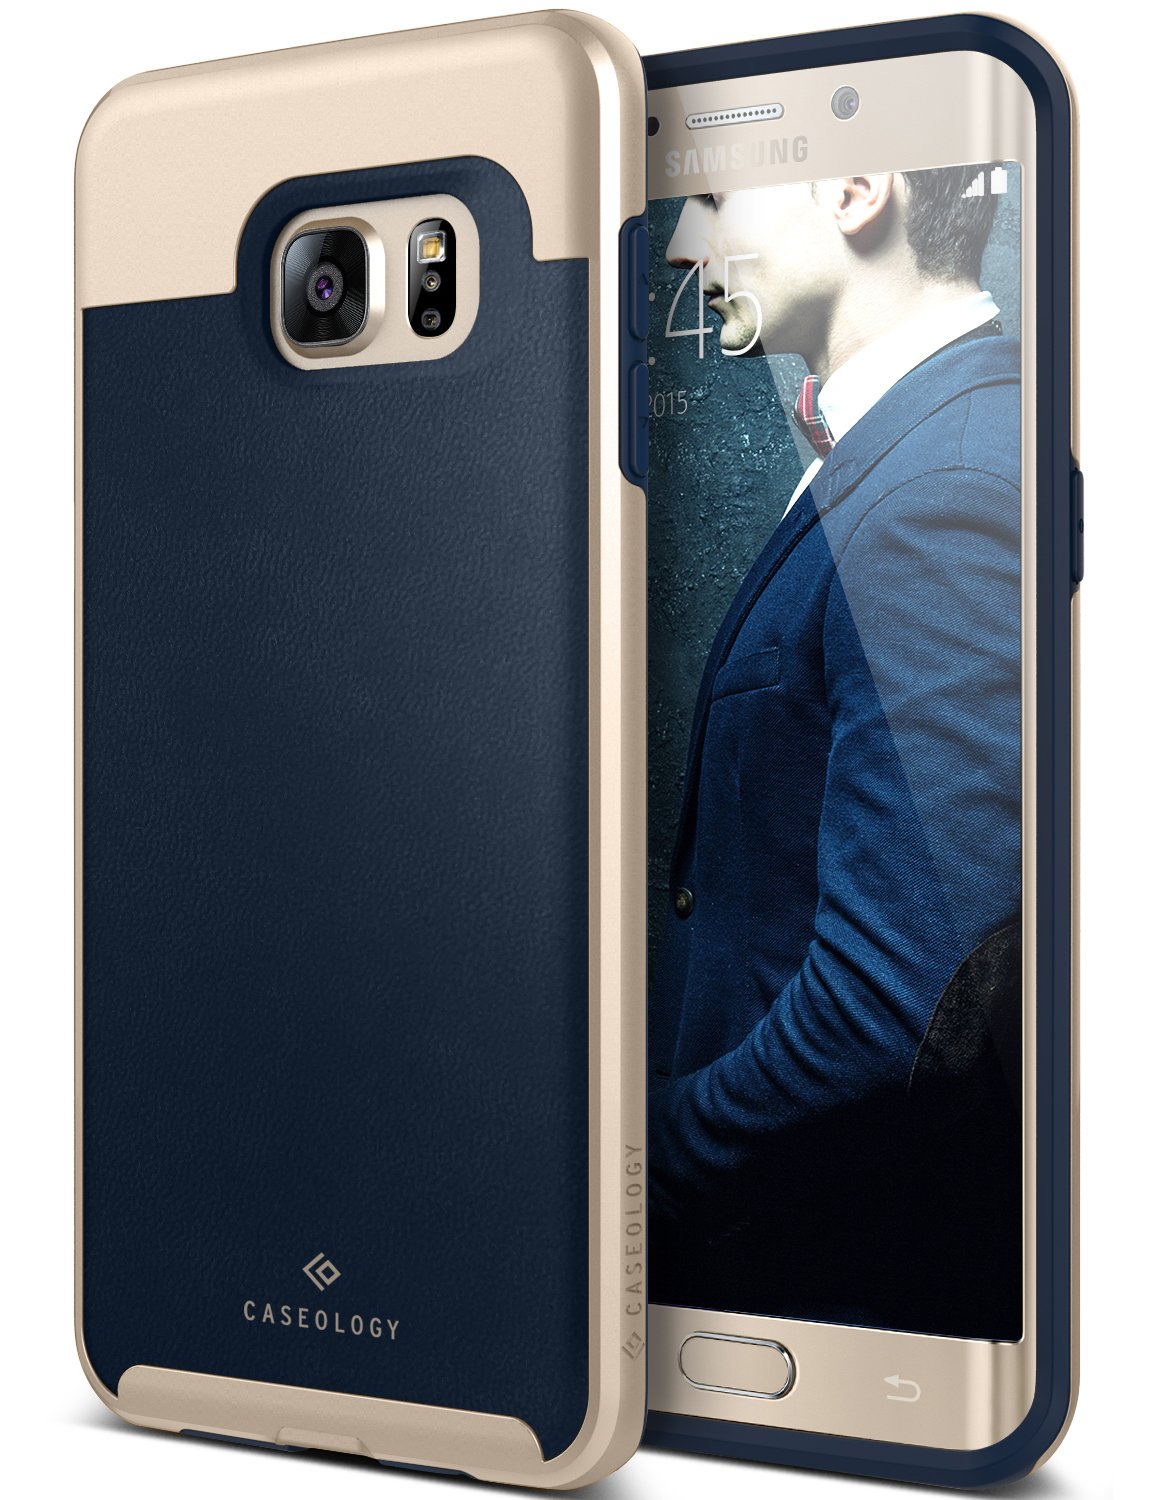 new style f5f53 6e277 Galaxy S6 Edge Plus Case, Caseology [Envoy Series] Classic Rich Texture  Leather [Leather Navy Blue] [Luxury Slim] for Samsung Galaxy S6 Edge Plus